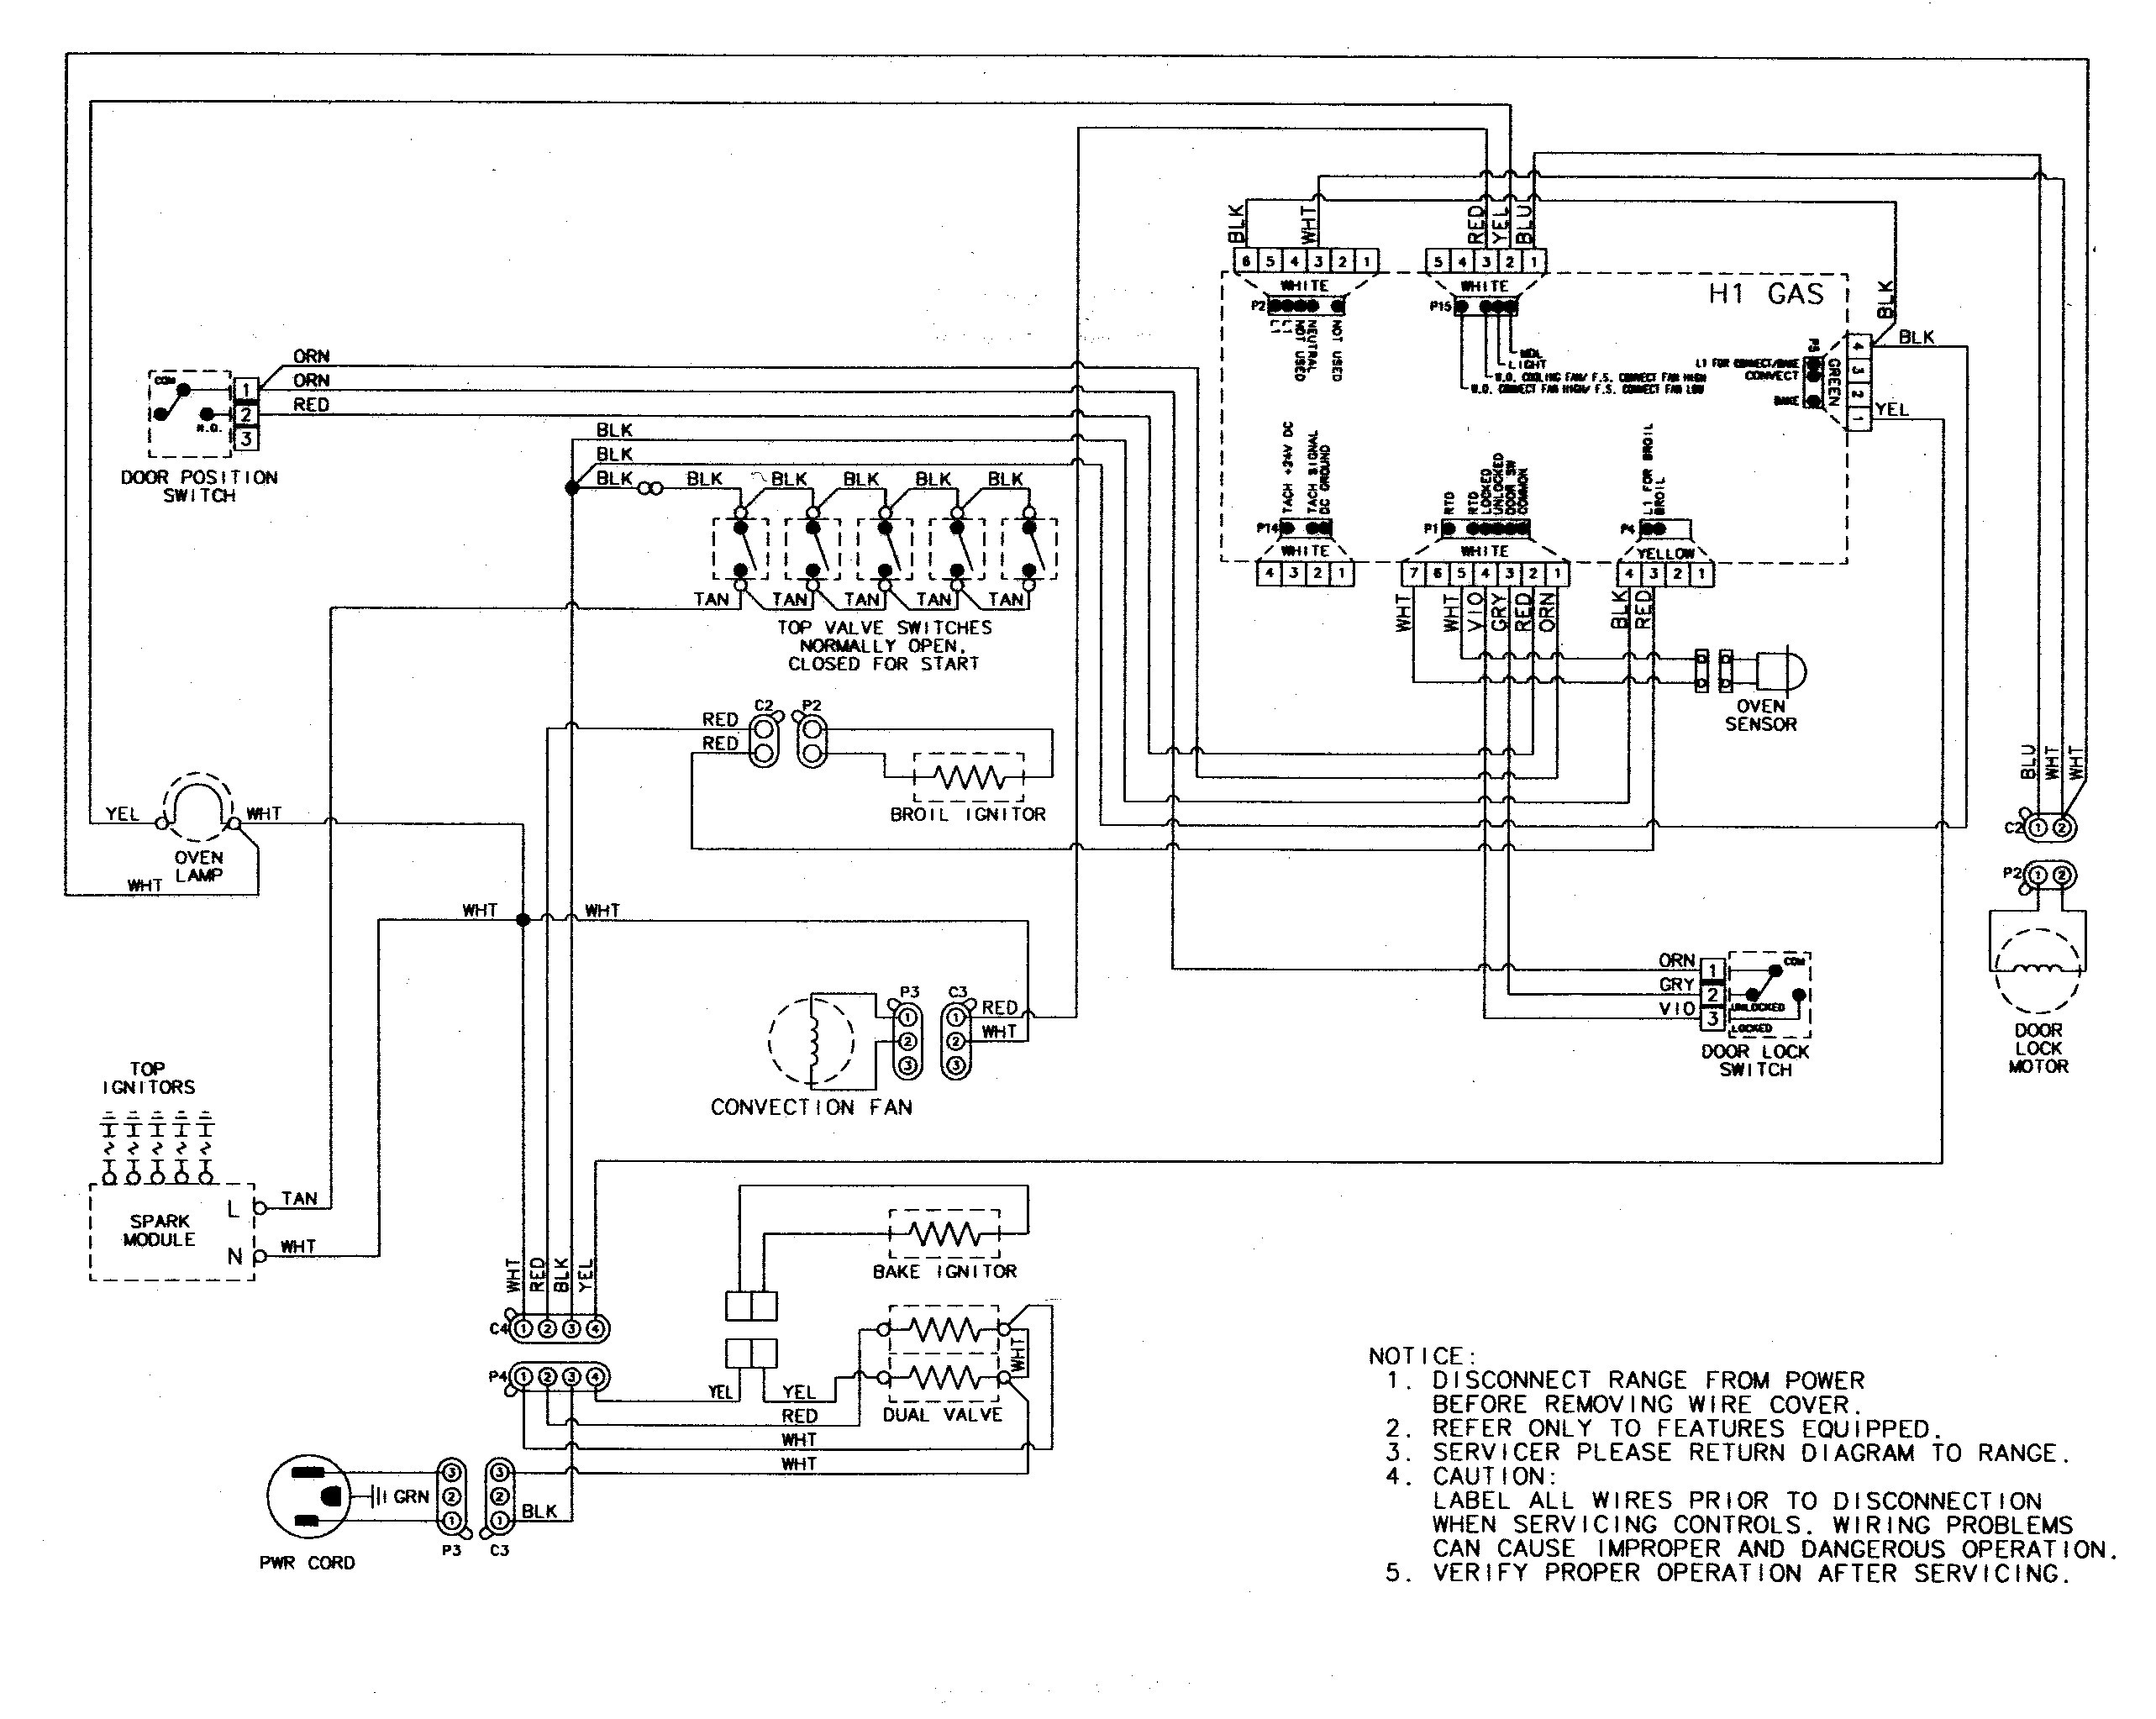 hotpoint motor wiring diagram the uptodate wiring diagramhotpoint wiring diagrams z3 wiring library diagram goettl wiring diagrams hotpoint dryer diagram wiring diagram hotpoint